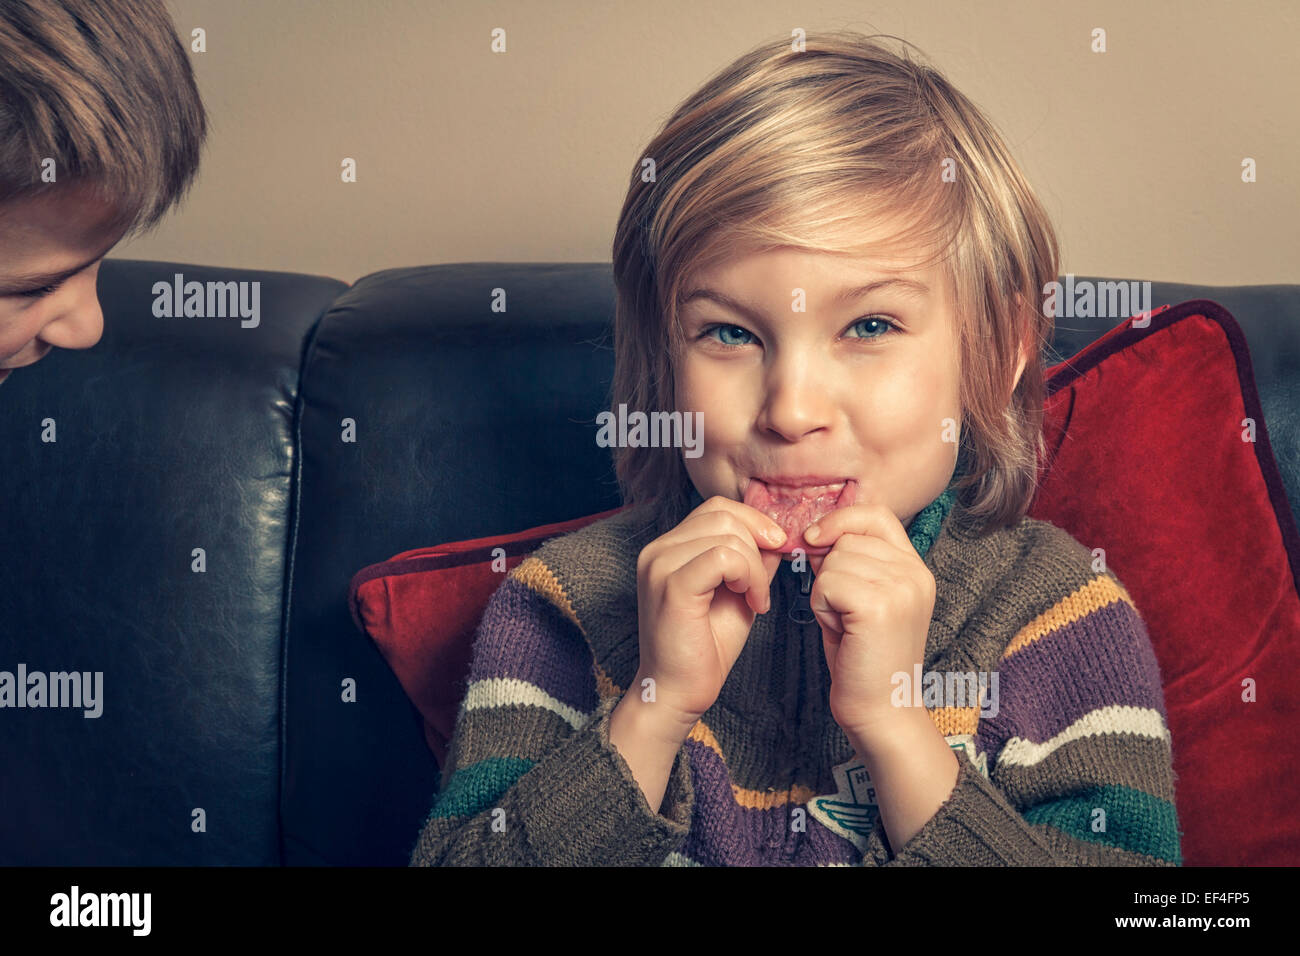 Young boy in living room making a face. - Stock Image